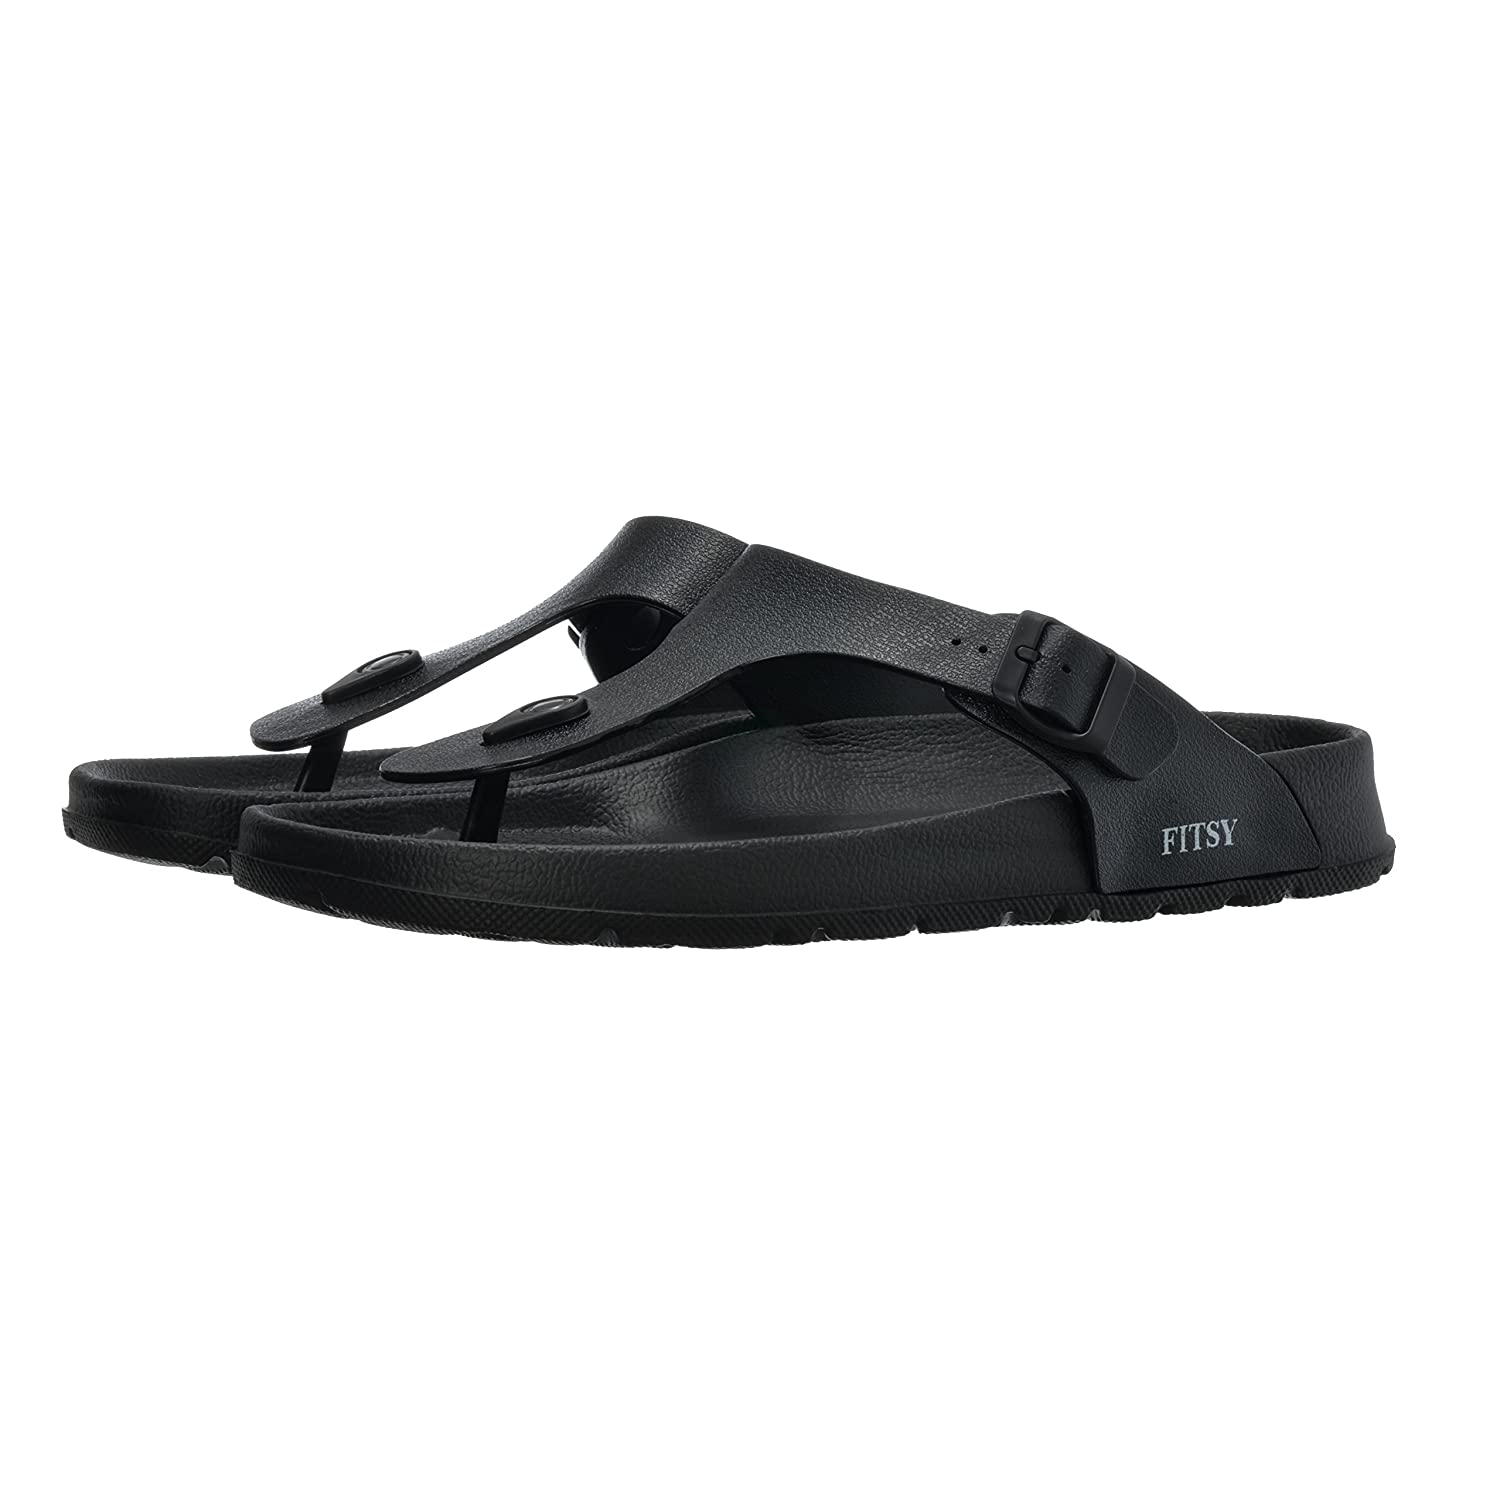 77f7c6459f845 Amazon.com  FITSY Thomas Men s Toe Post Flip-Flop Summer Holiday  Indoor Outdoor Shower Garden Anti-Slip Pool Thong Beach Sandals (US 10.5